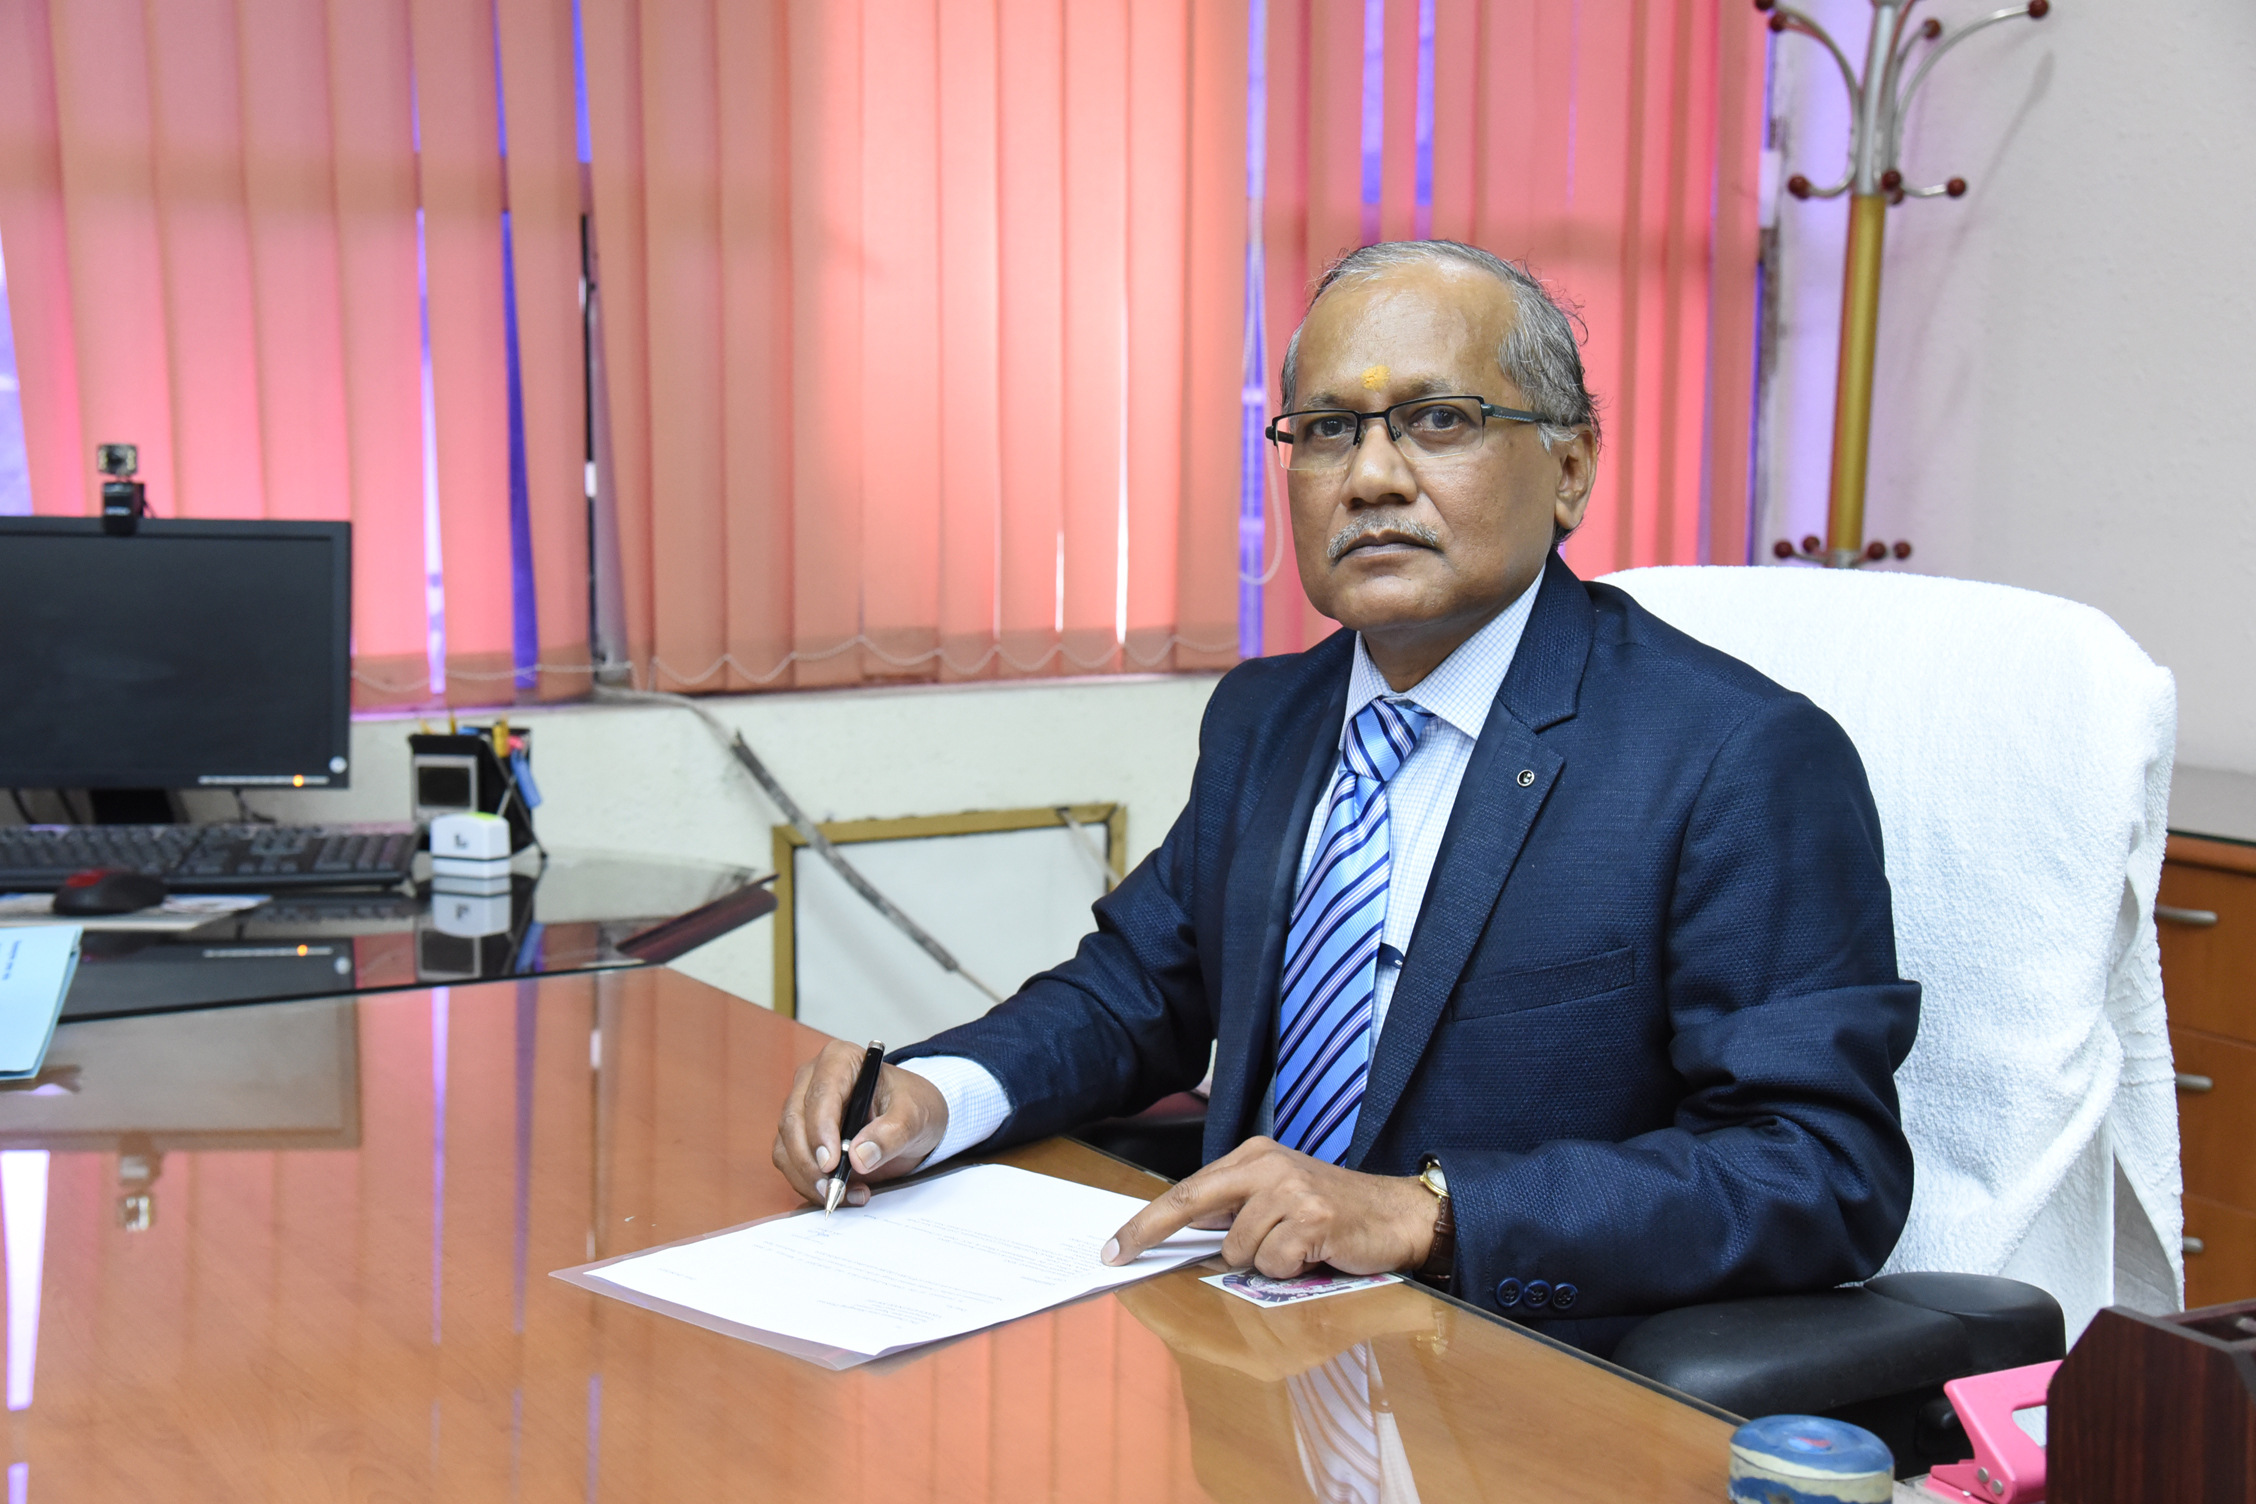 Shri KK Ghosh assumes charge as Director Projects of RINL VSP